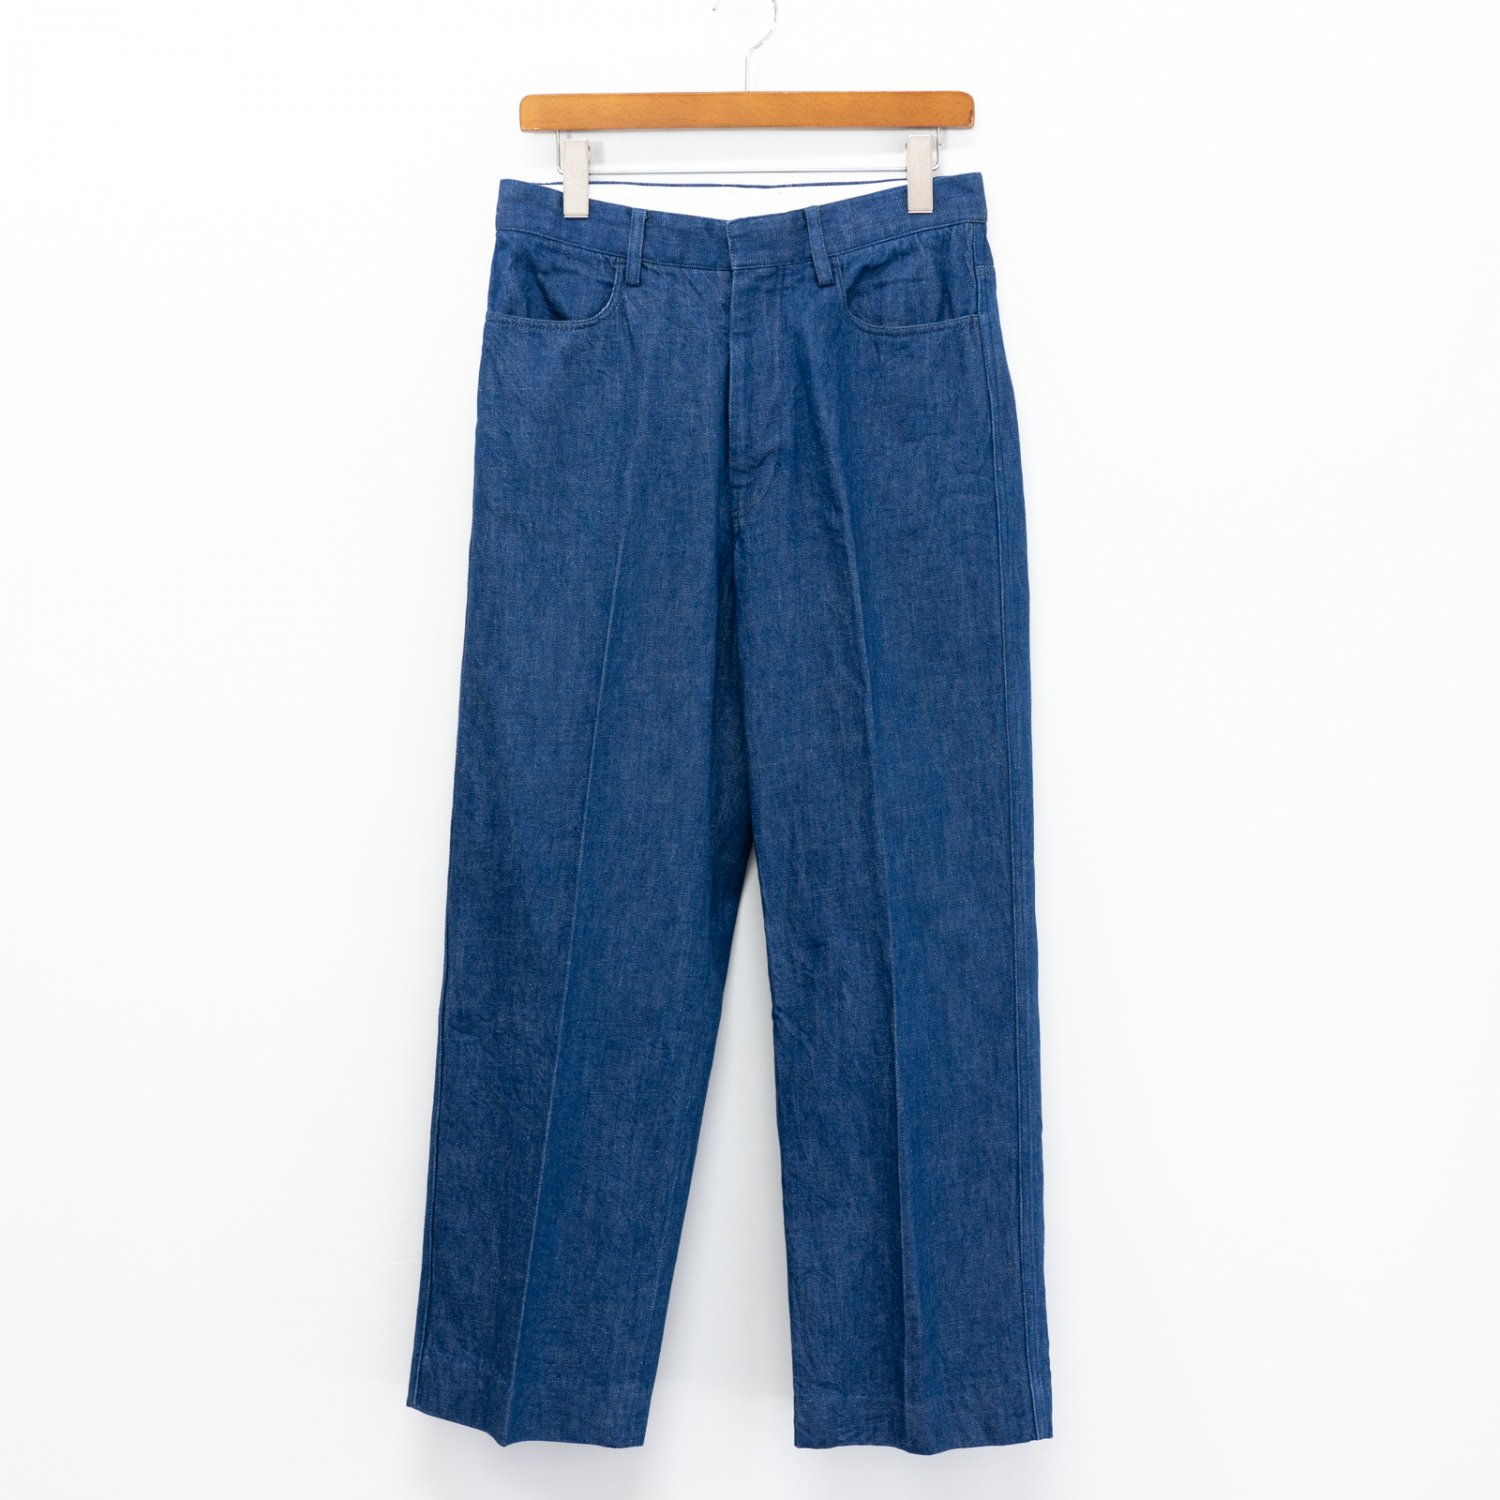 UNUSED * UW0808 Denim Slacks * Indigo